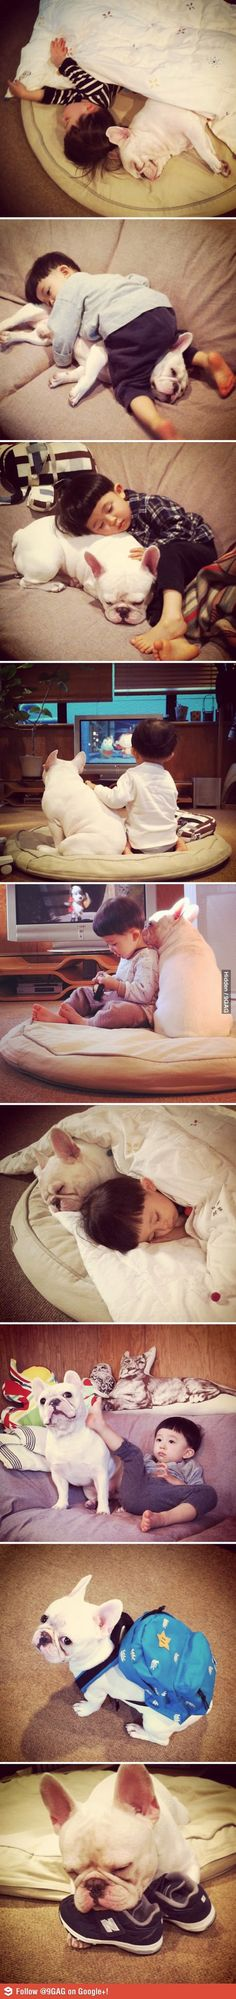 Best friends.-too adorable.